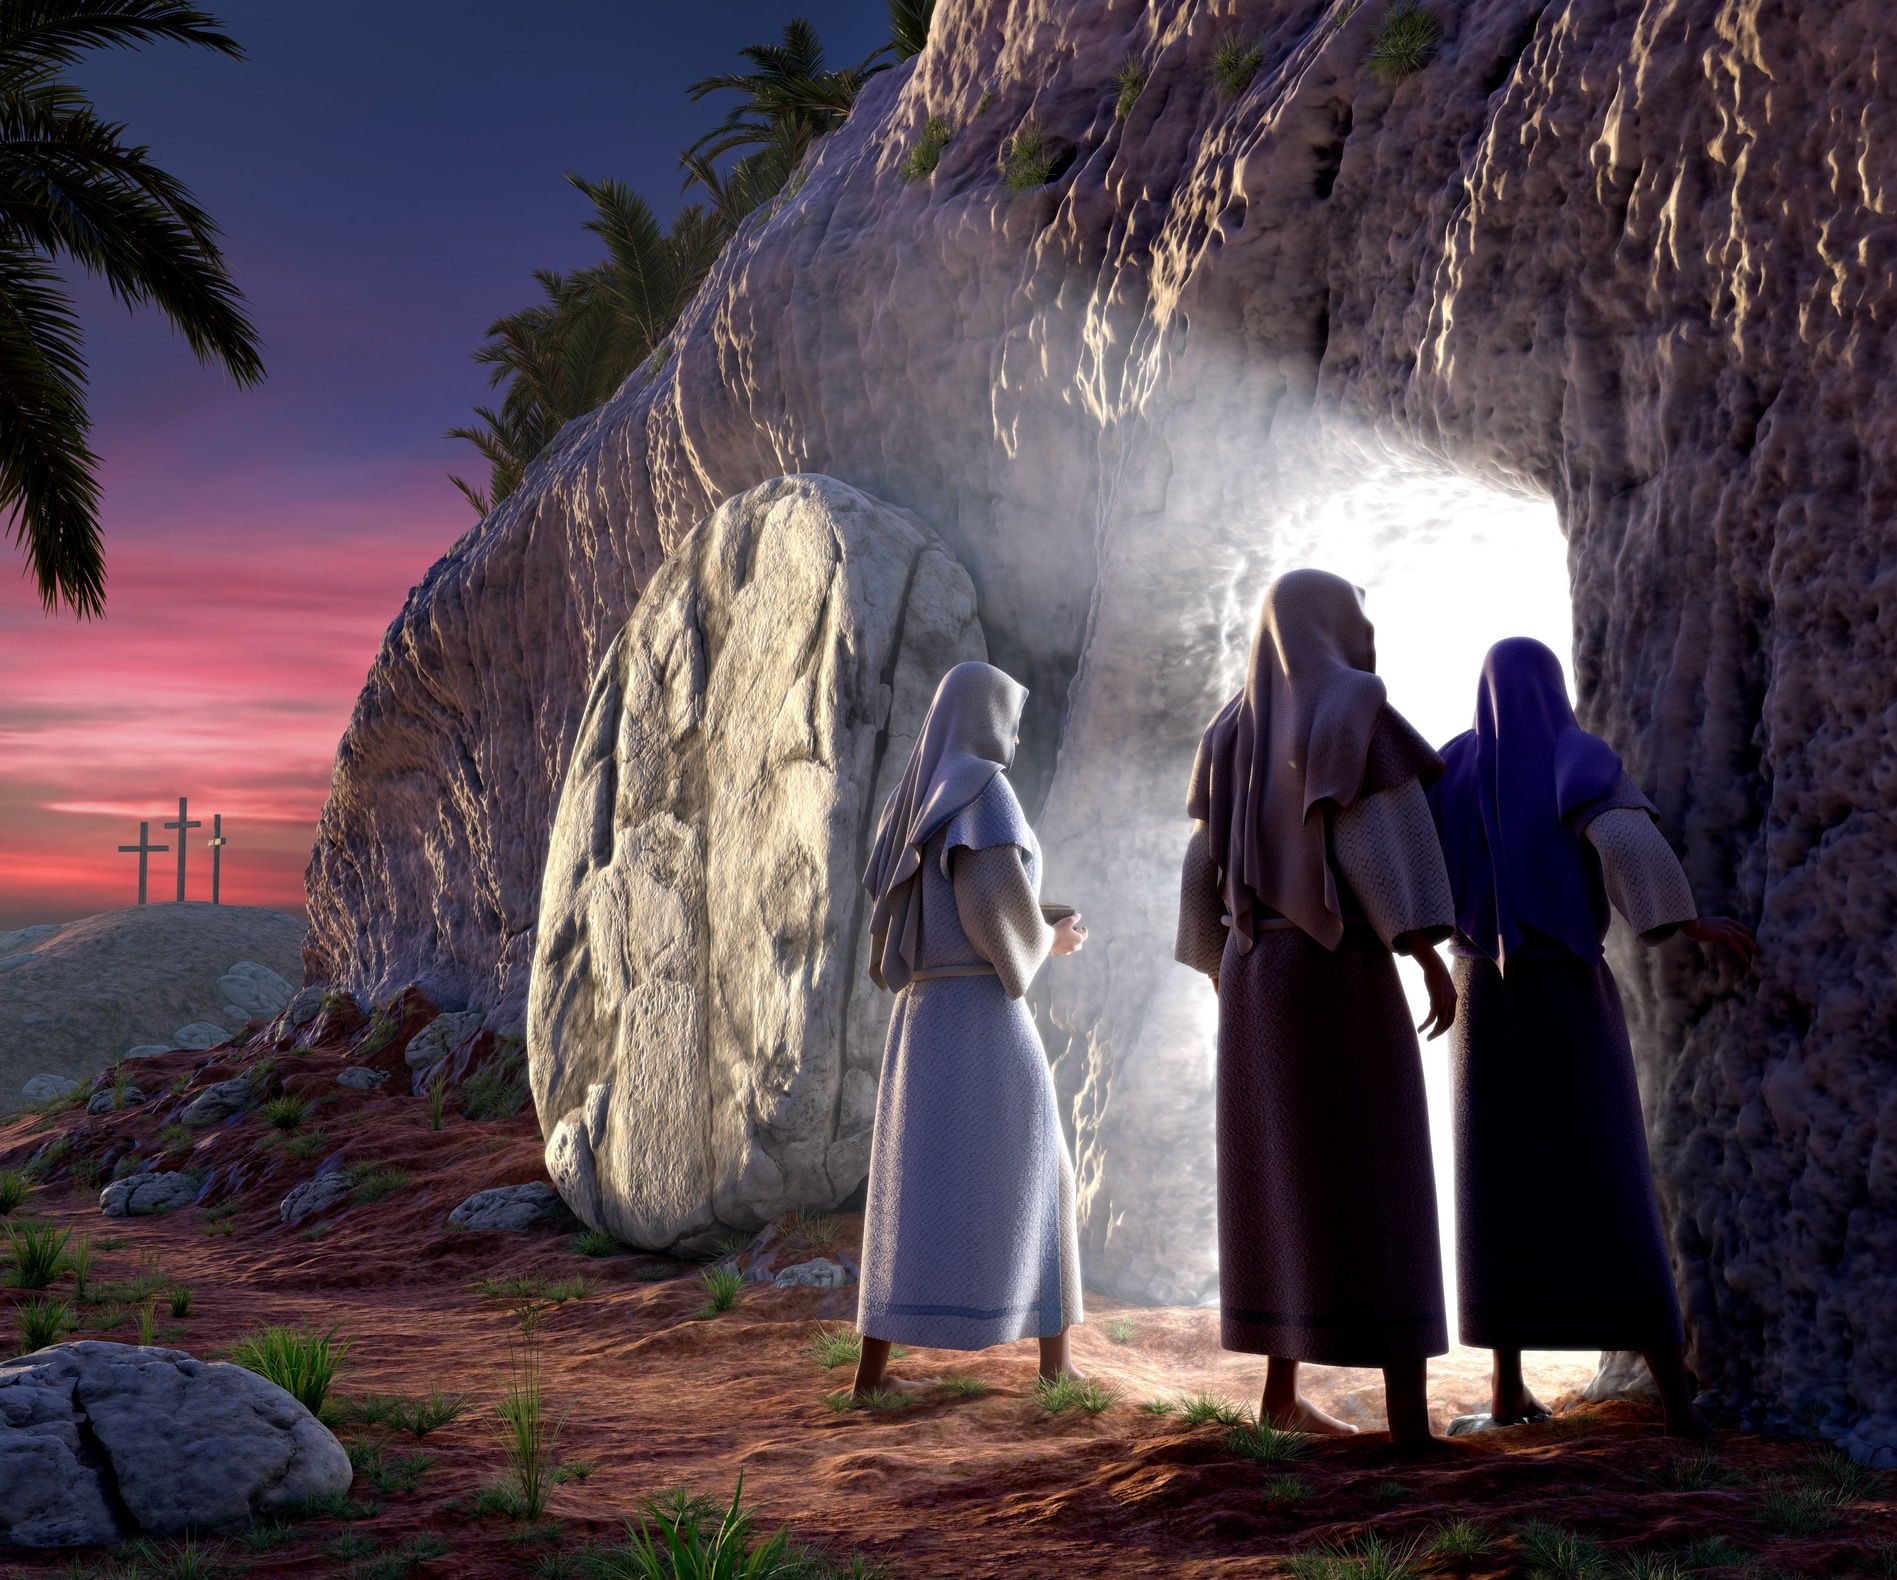 Jesus' Resurrection – What Changed?